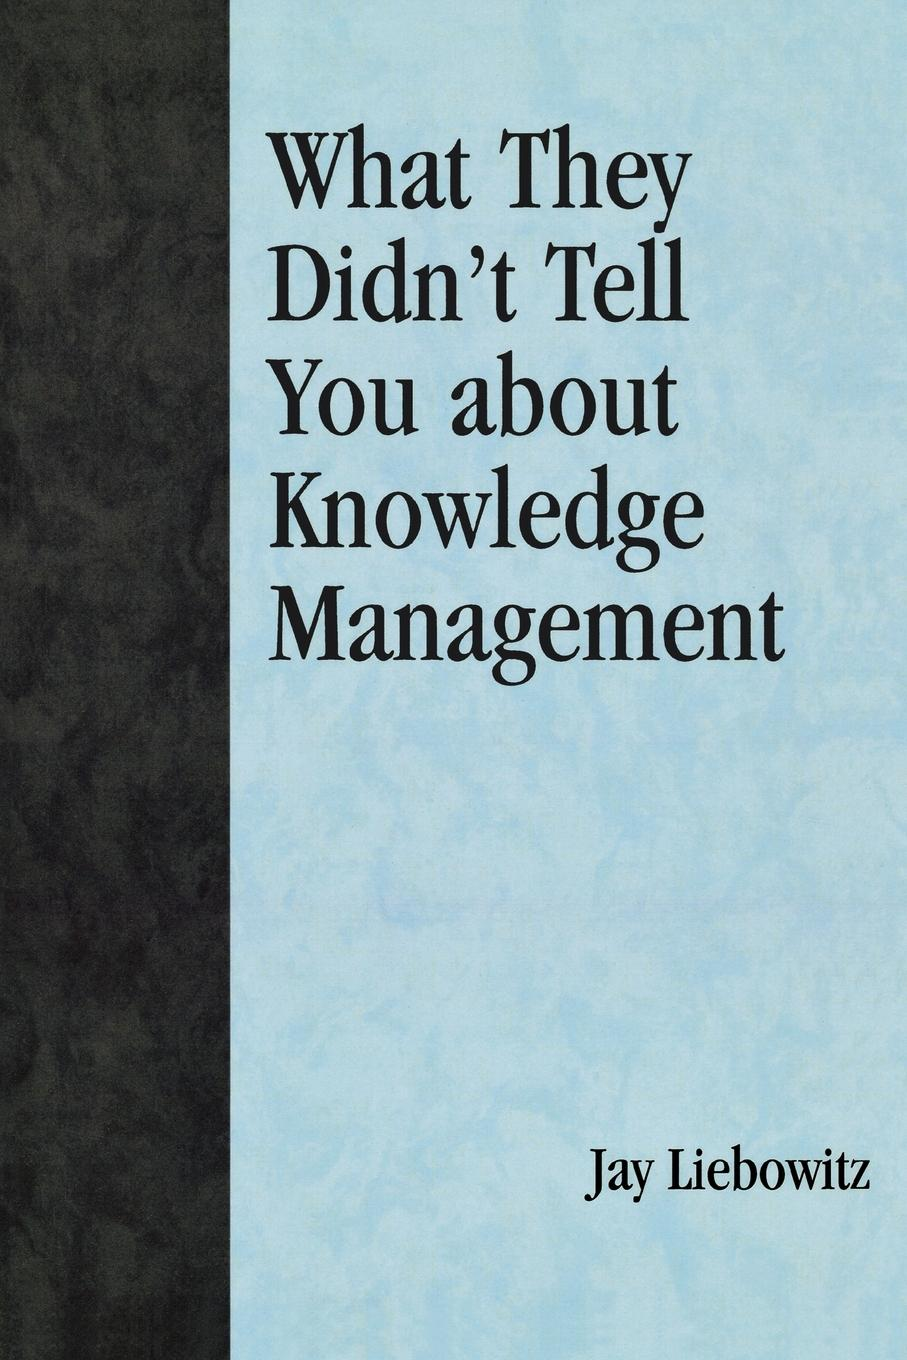 What They Didn't Tell You About Knowledge Management By: Jay Liebowitz